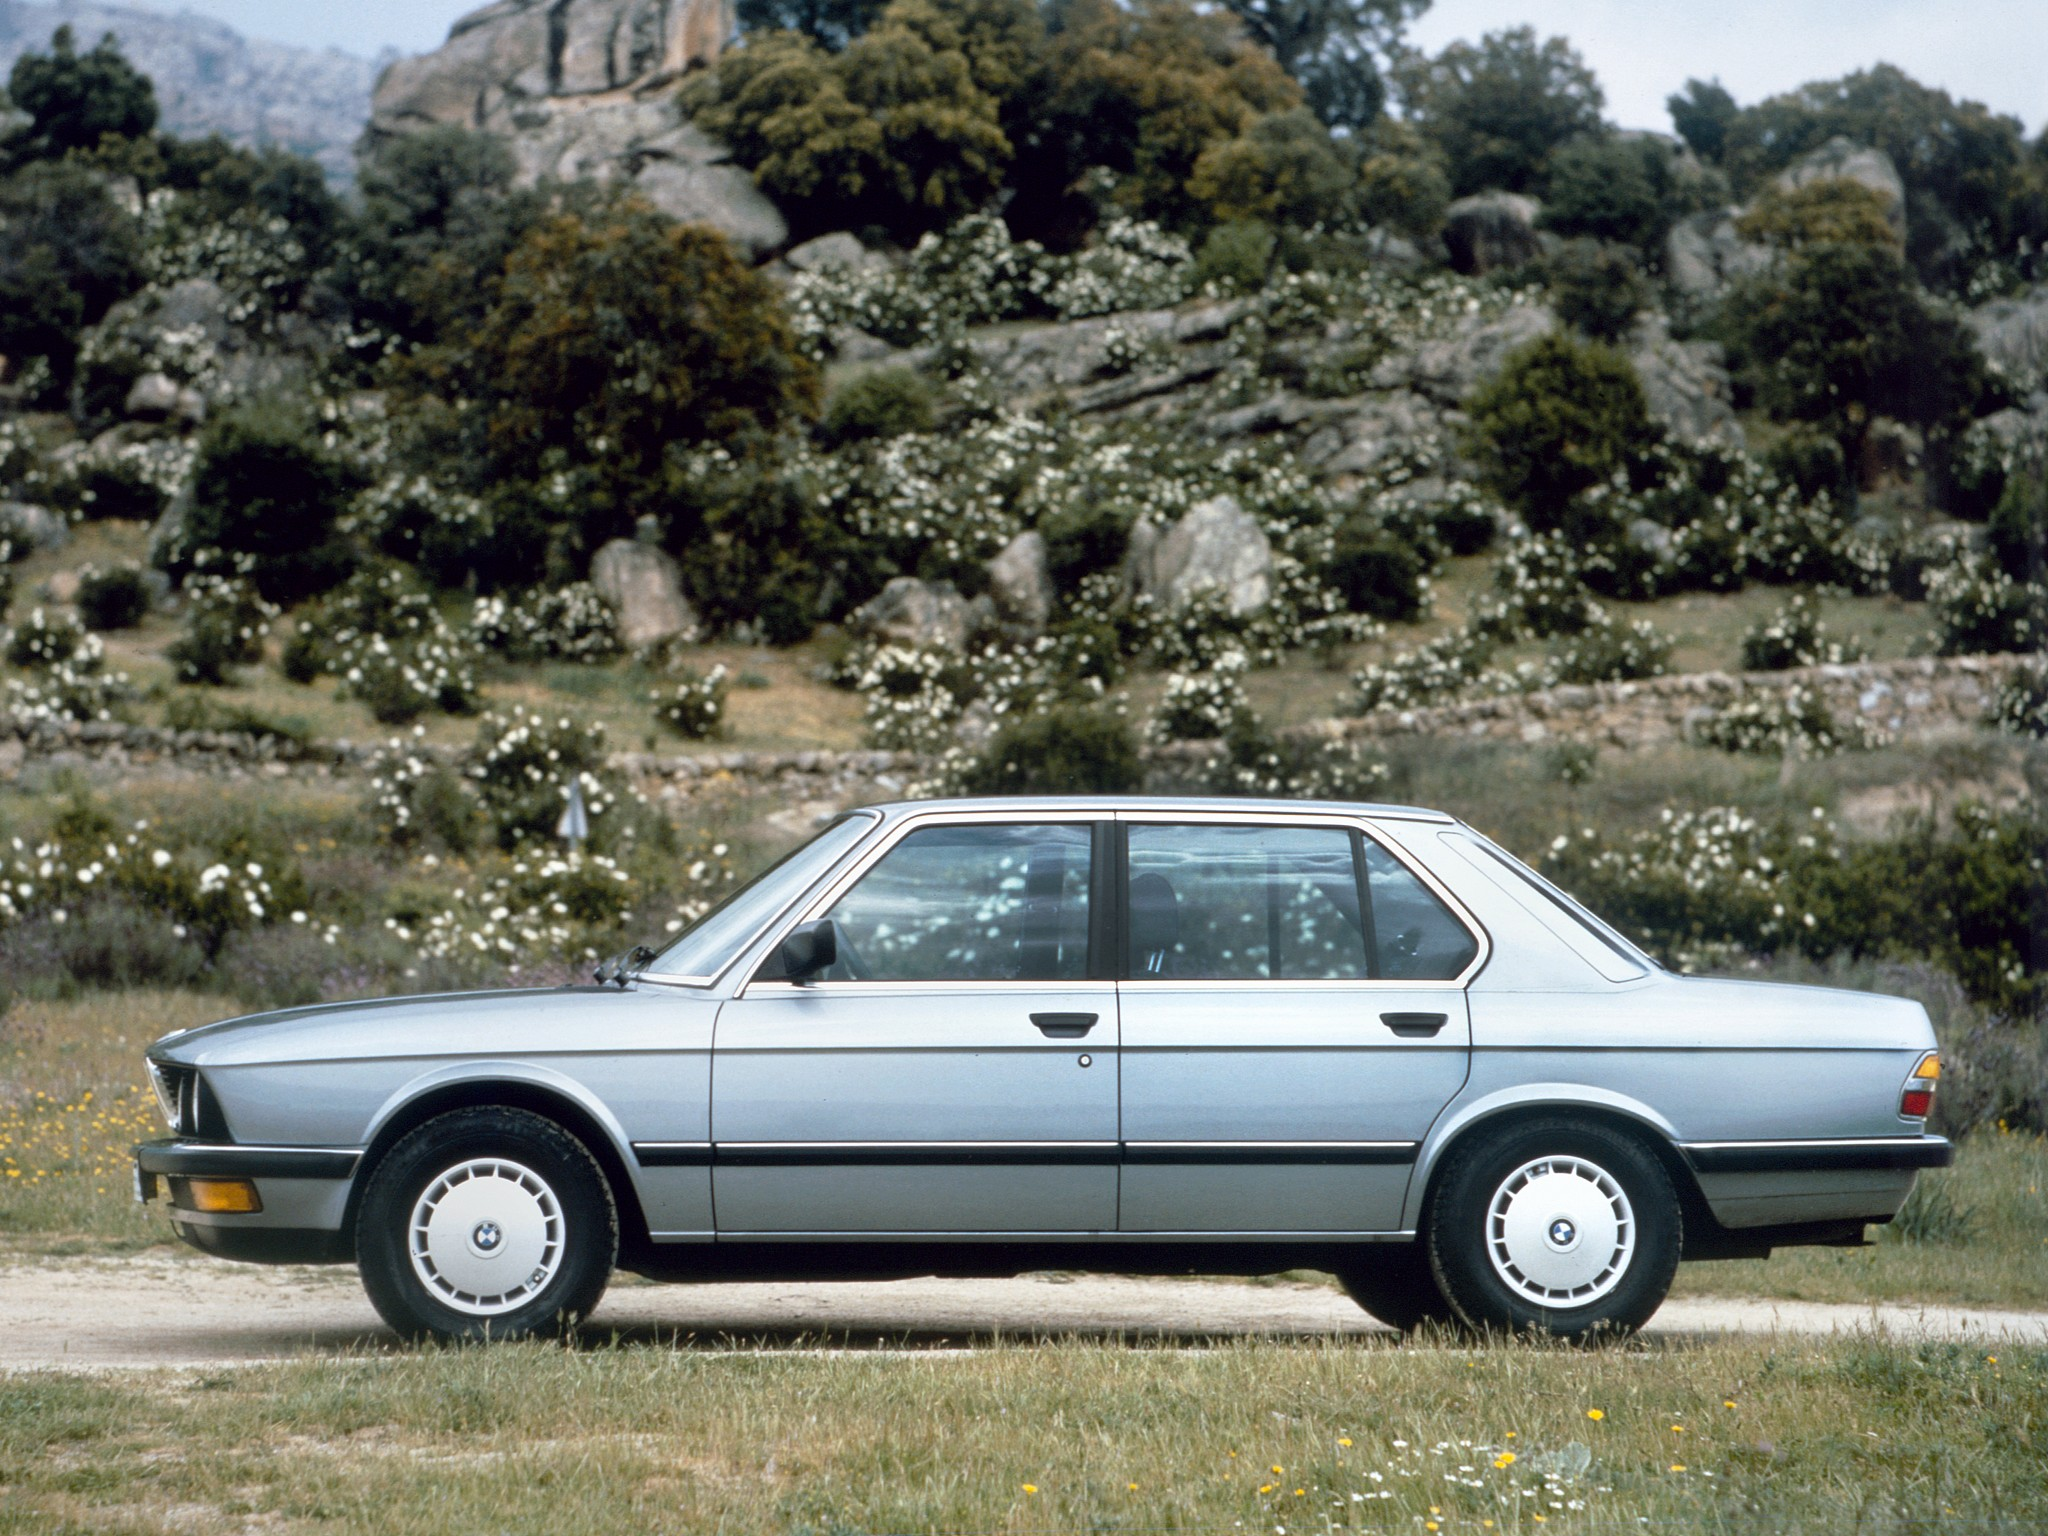 BMW 5 series 524td 1983 Technical specifications | Interior and ...